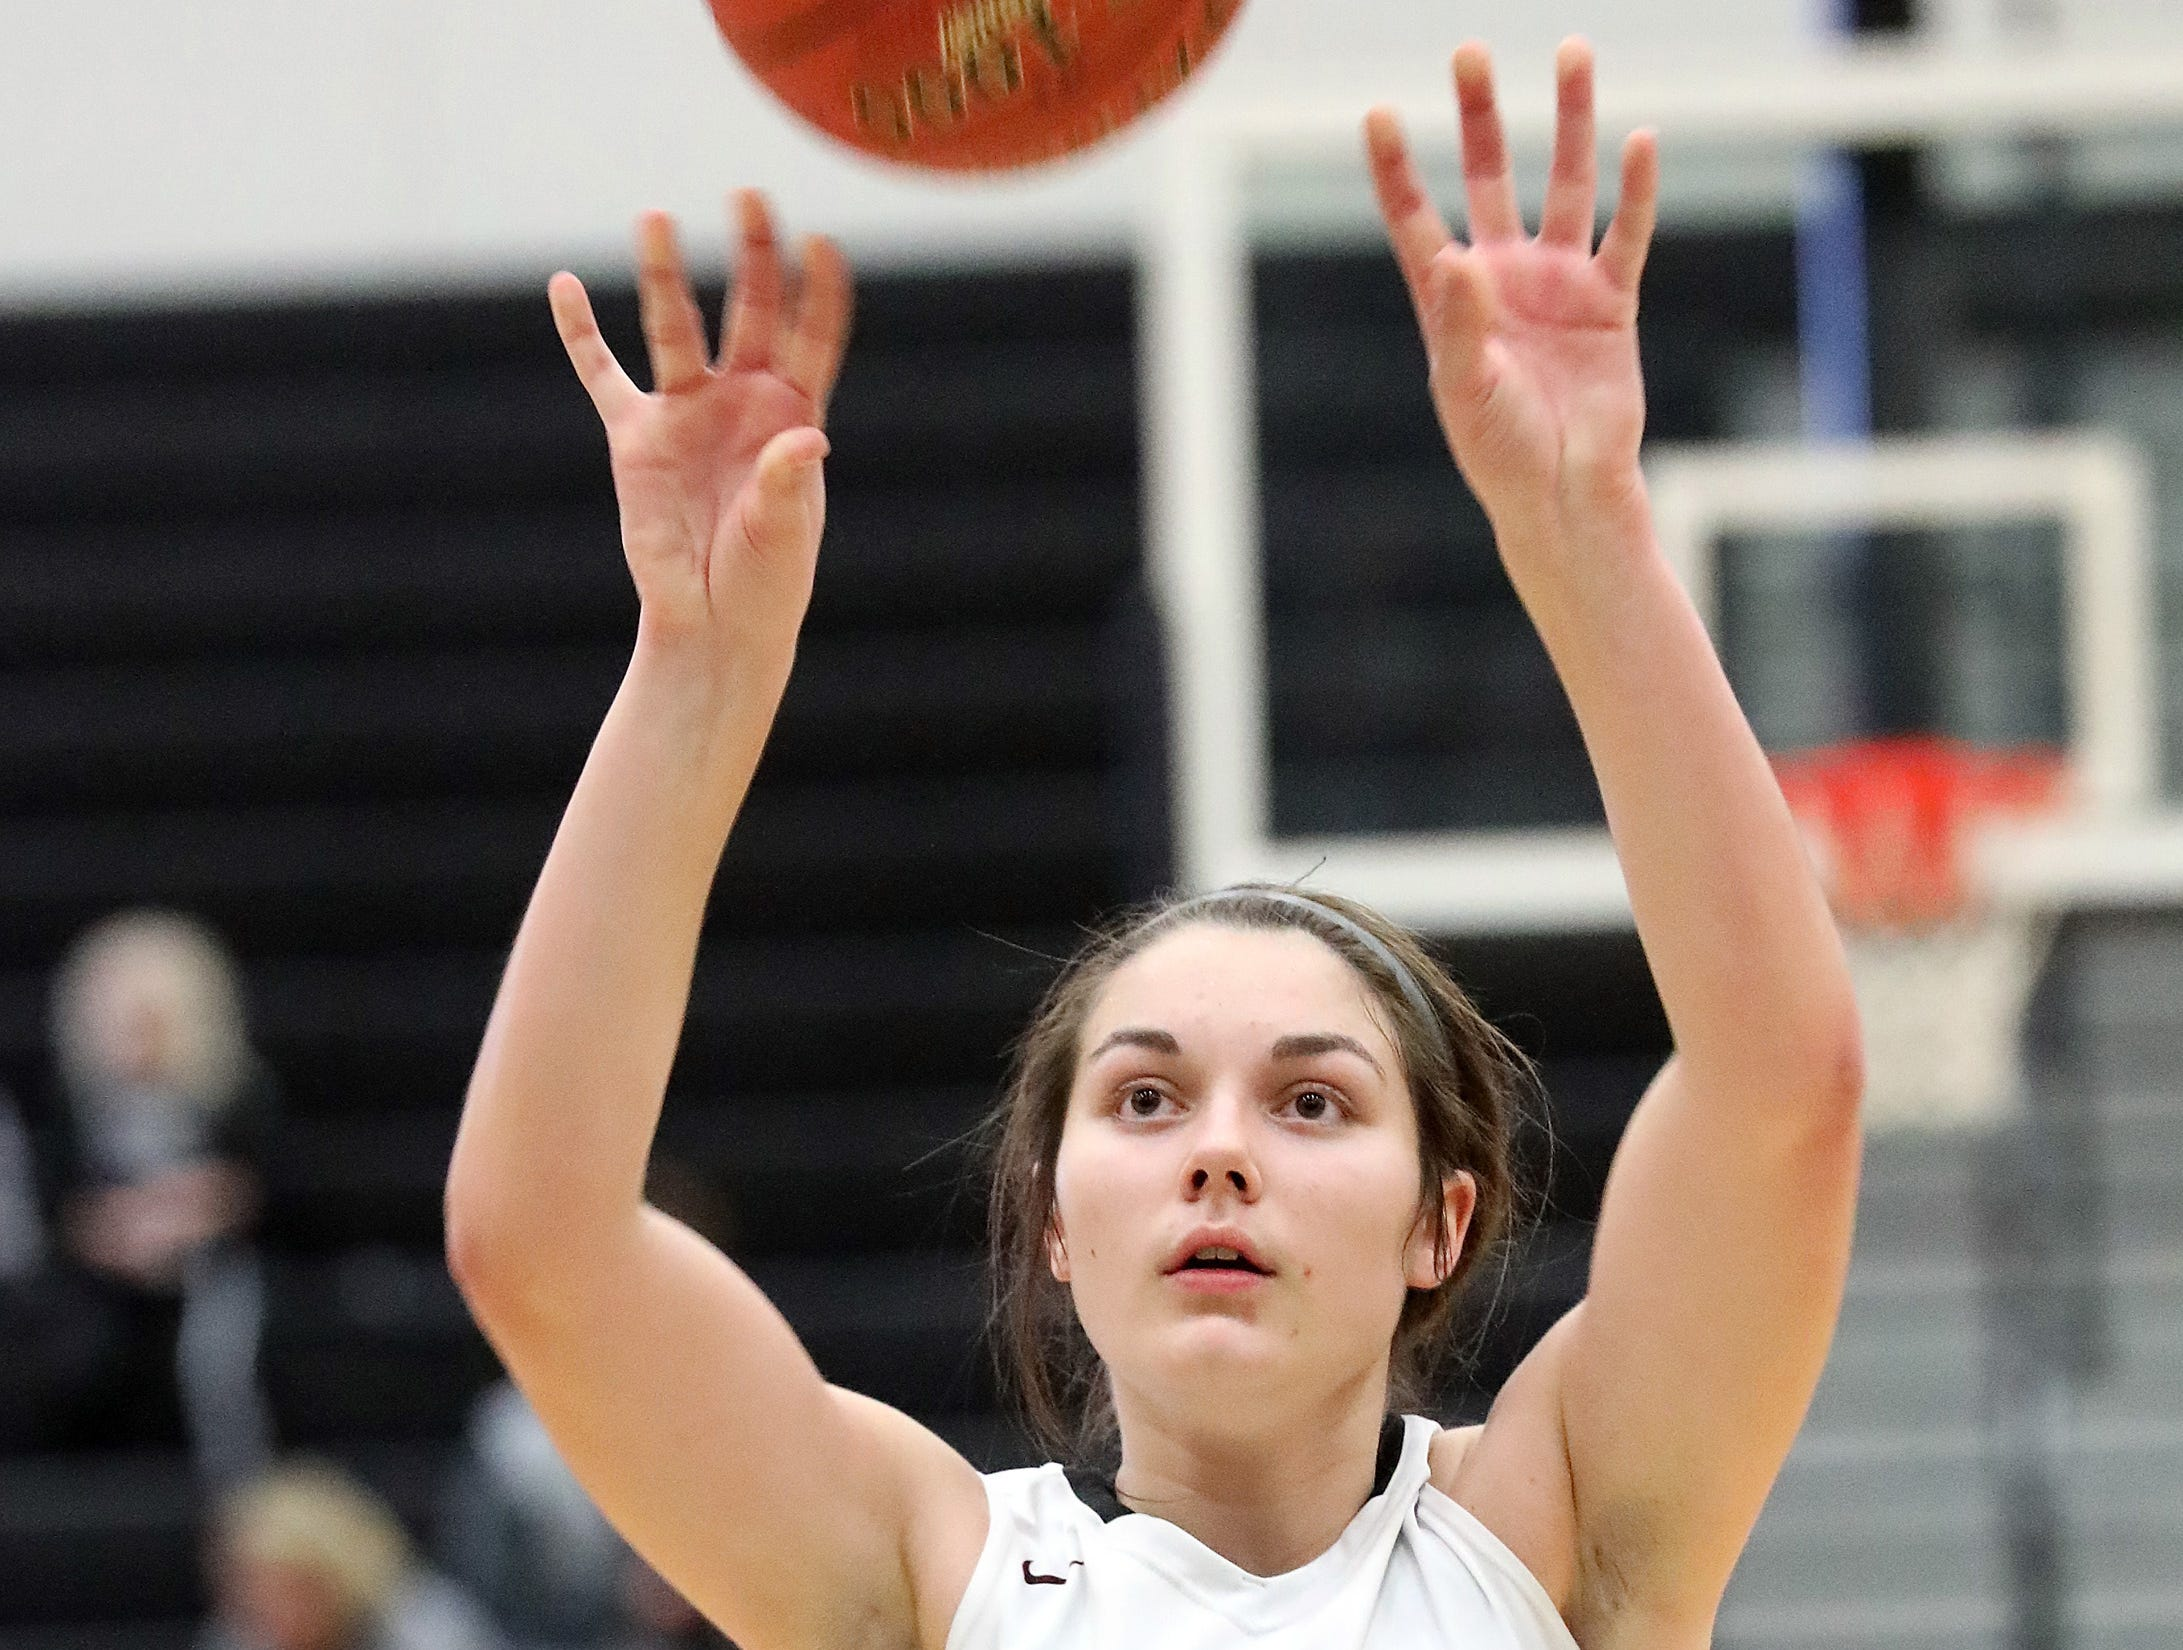 Ankeny Centennial freshman Cleao Murray makes her free throw attempt as the Marshalltown Bobcats compete against the Ankeny Centennial Jaguars in high school girls basketball on Tuesday, Jan. 8, 2019 at Ankeny Centennial High School. ACHS won 70 to 19.